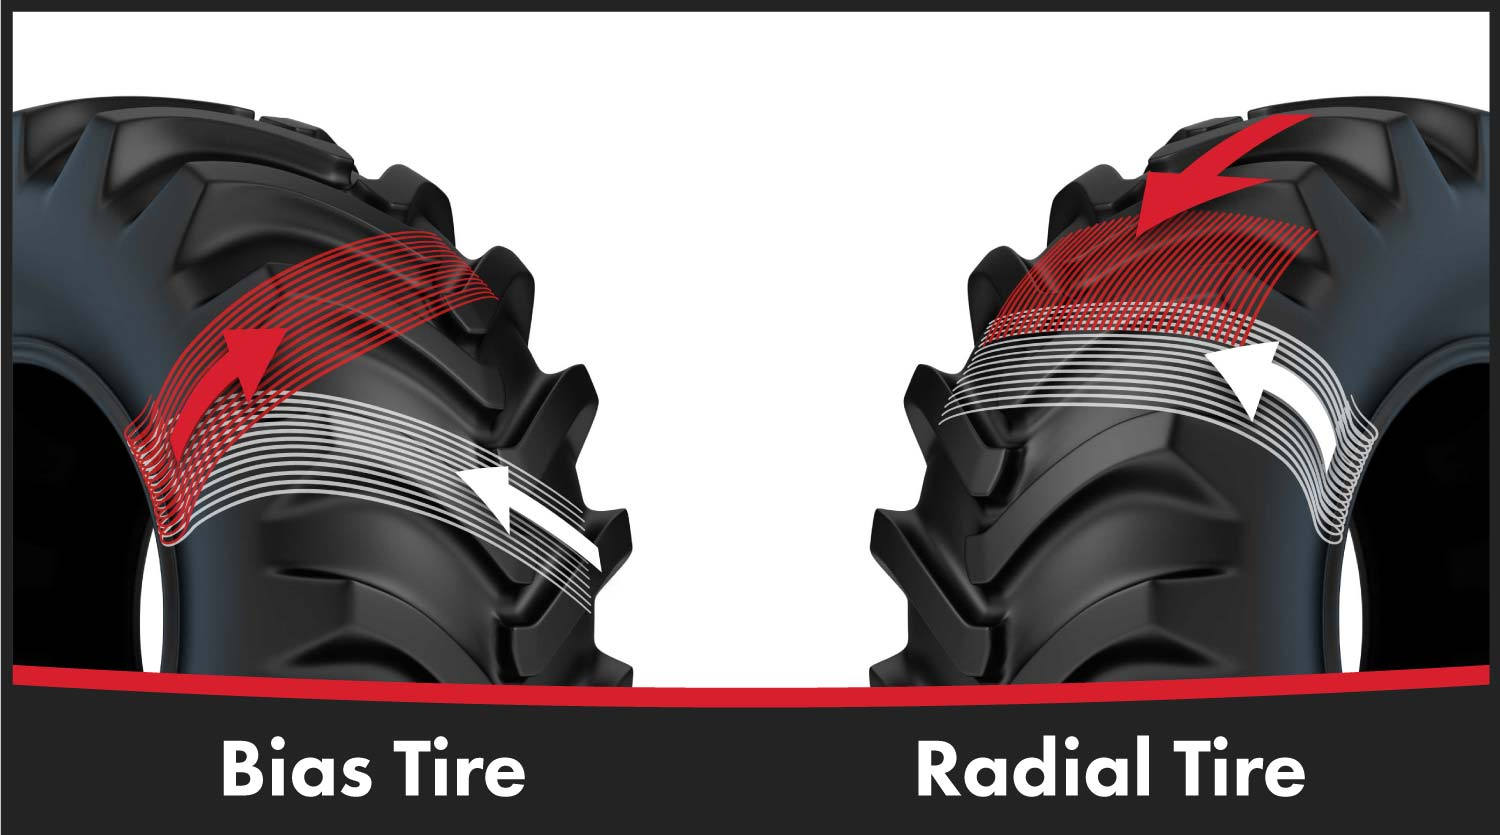 A radial tractor tire is designed as a two-part construction allowing the sidewall of the tire to flex independently of the face or tread area of the tire. A bias tractor tire is designed with a single ply wrapped diagonally from one side of the tire to the other. This means that as the tire flexes, the face or tread of the tire deforms leading to faster, and sometimes more uneven wear.